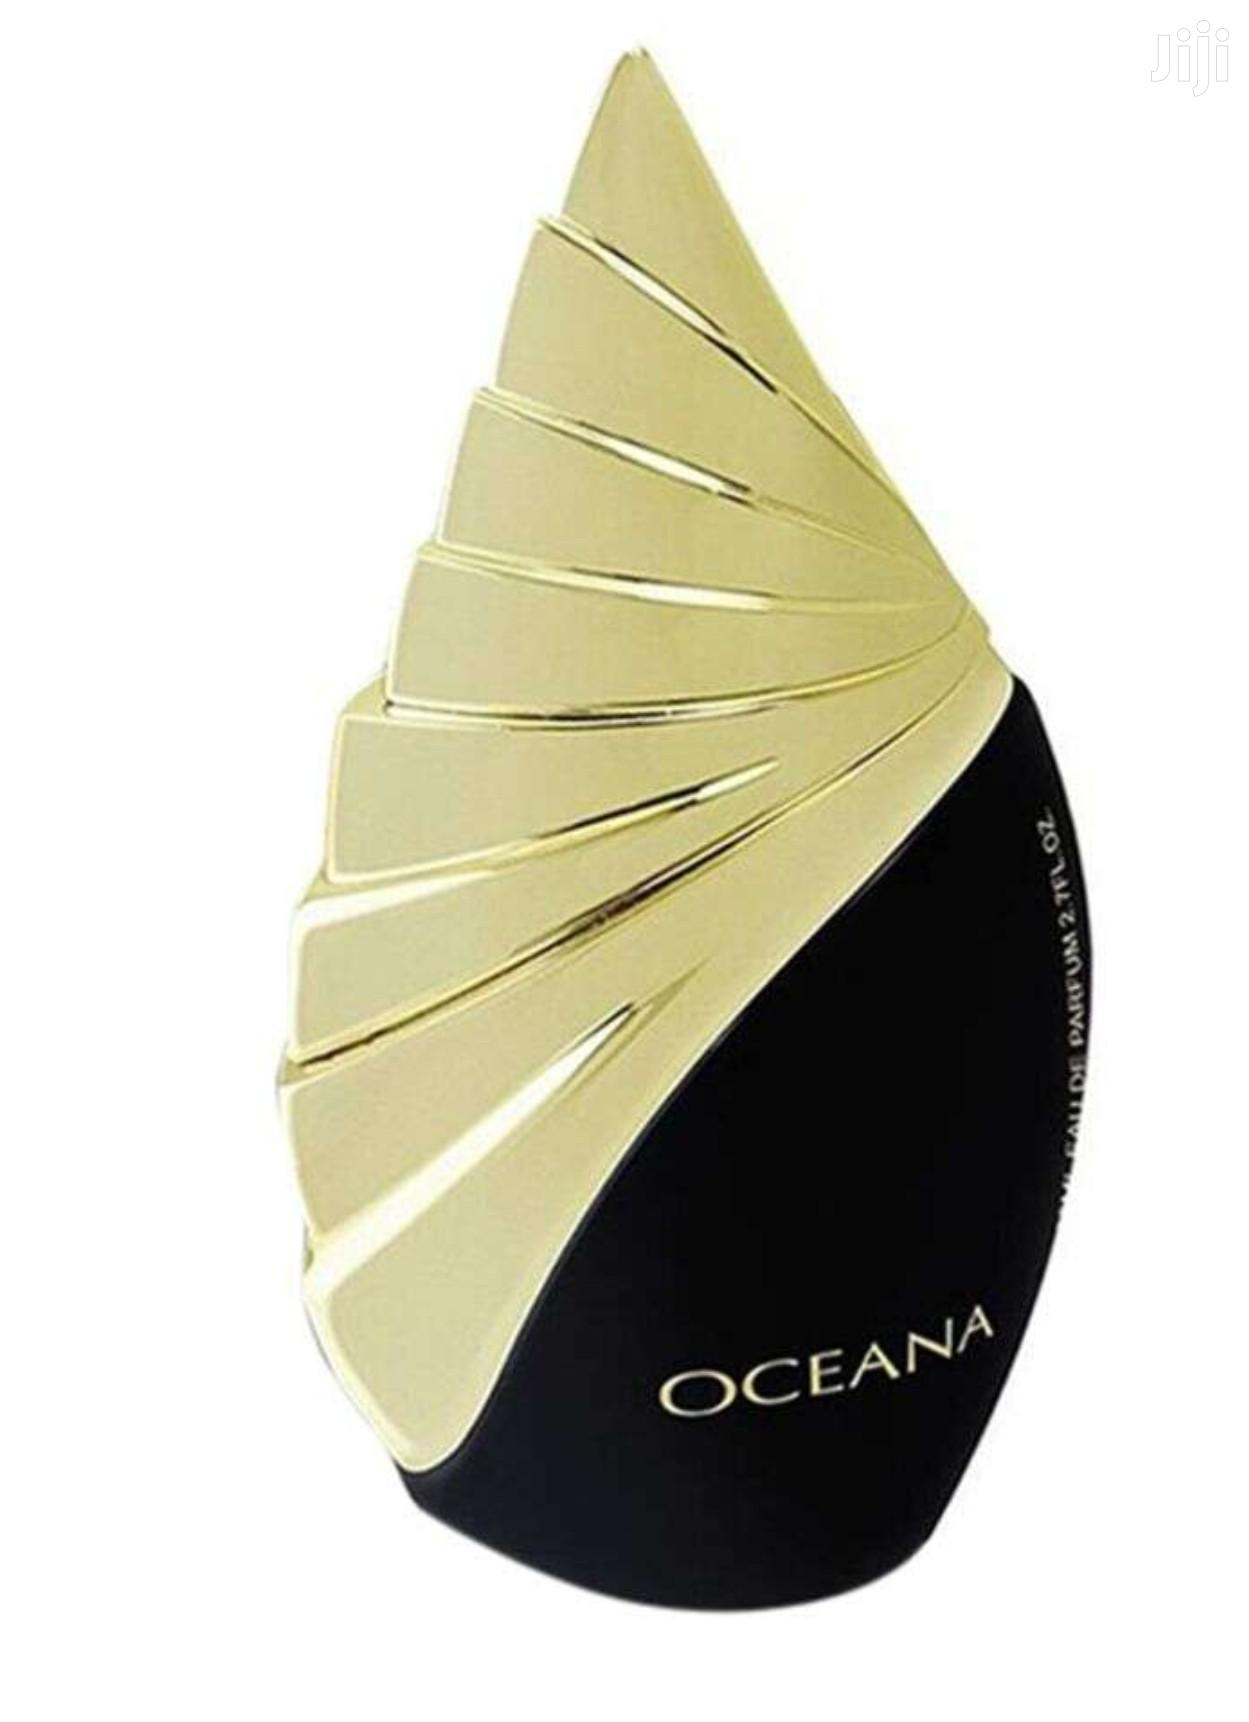 Oceana Perfume | Fragrance for sale in Accra Metropolitan, Greater Accra, Ghana